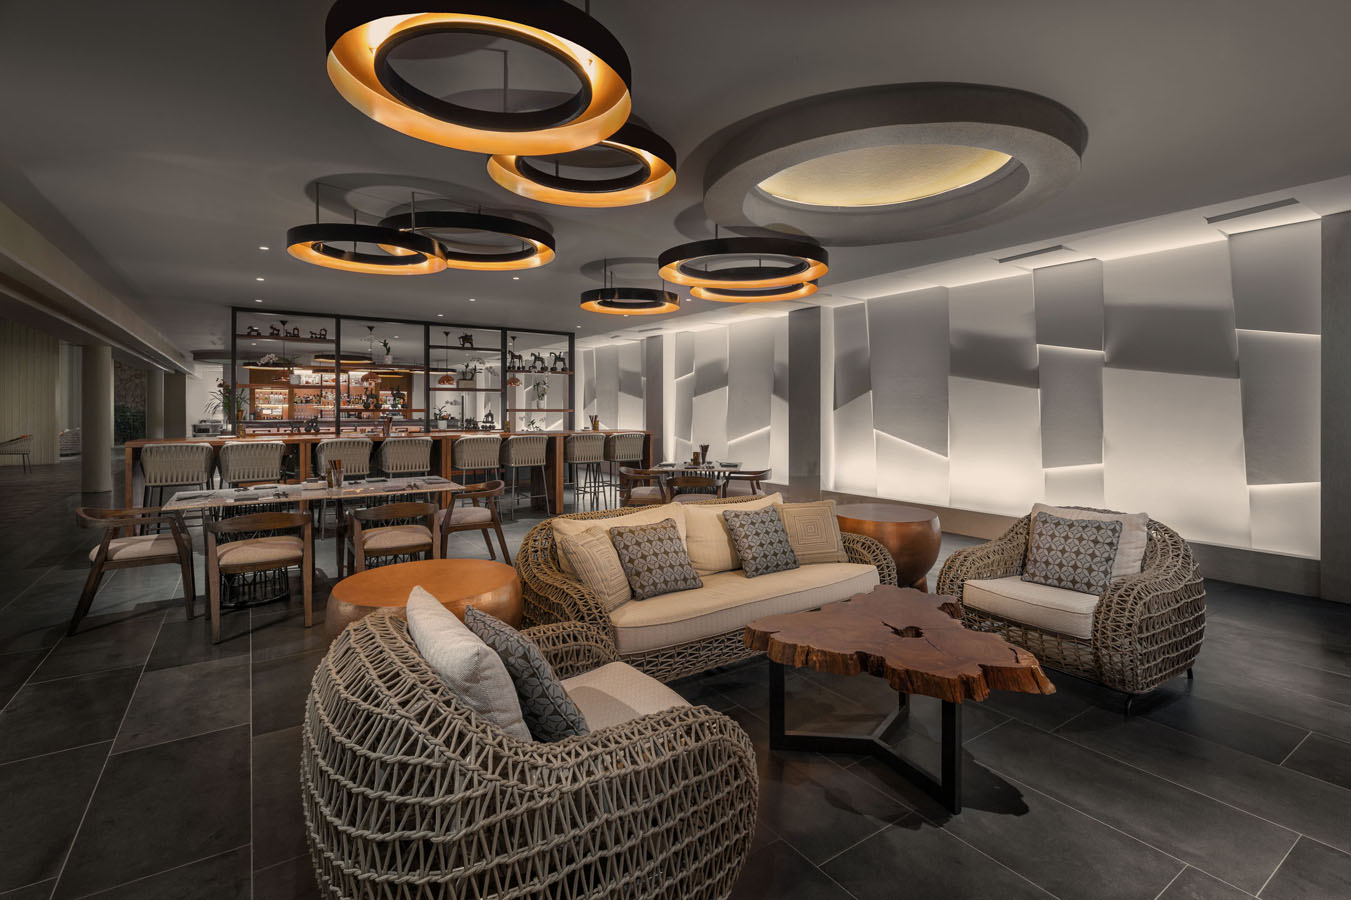 Hospitality — Hiram Banks Lighting Design